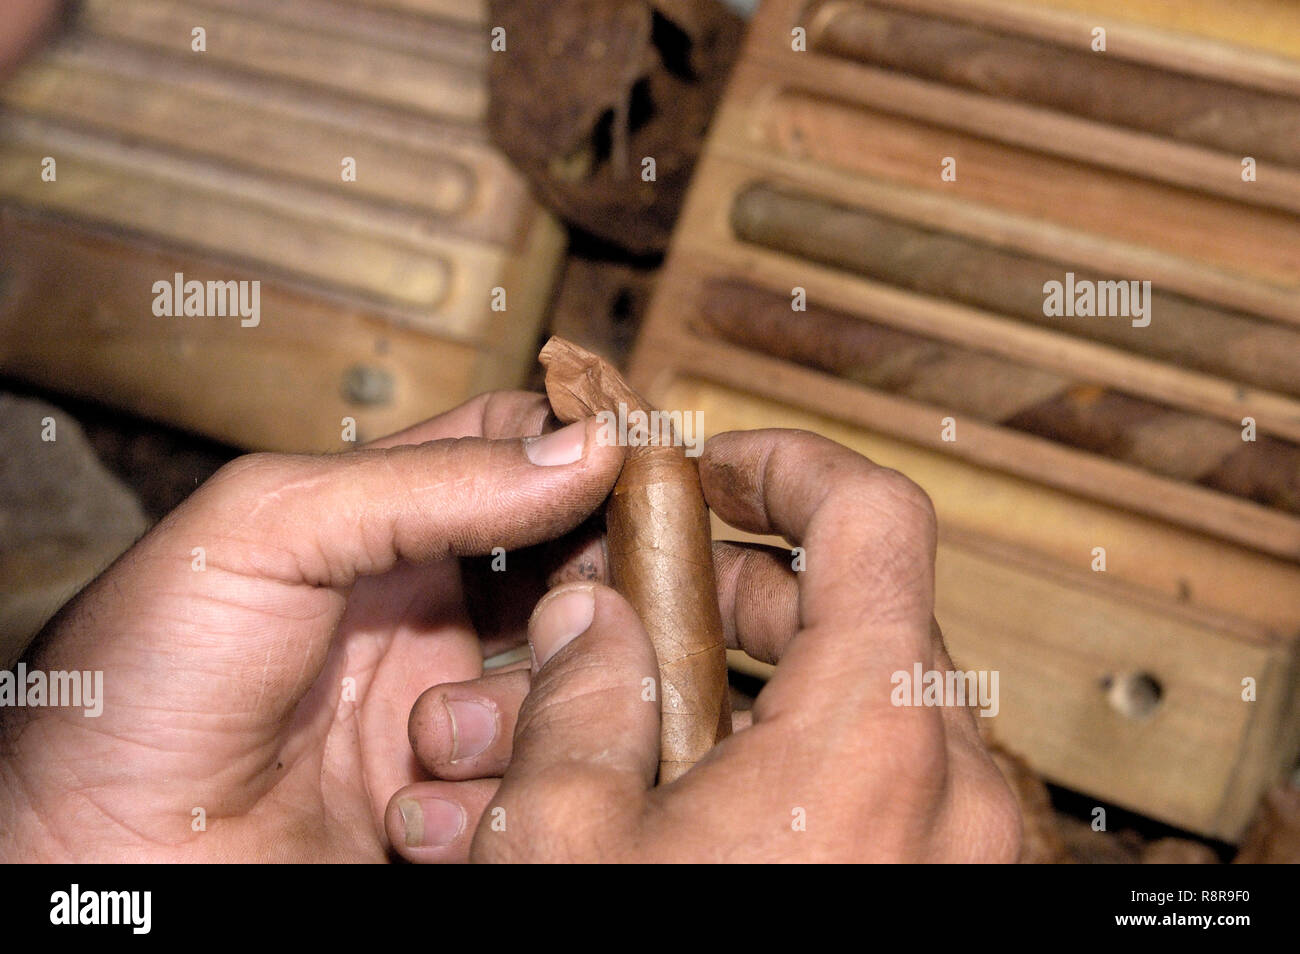 Closeup of hands making a cigar from tobacco leaves. Traditional manufacture of cigars in Cuba - Stock Image